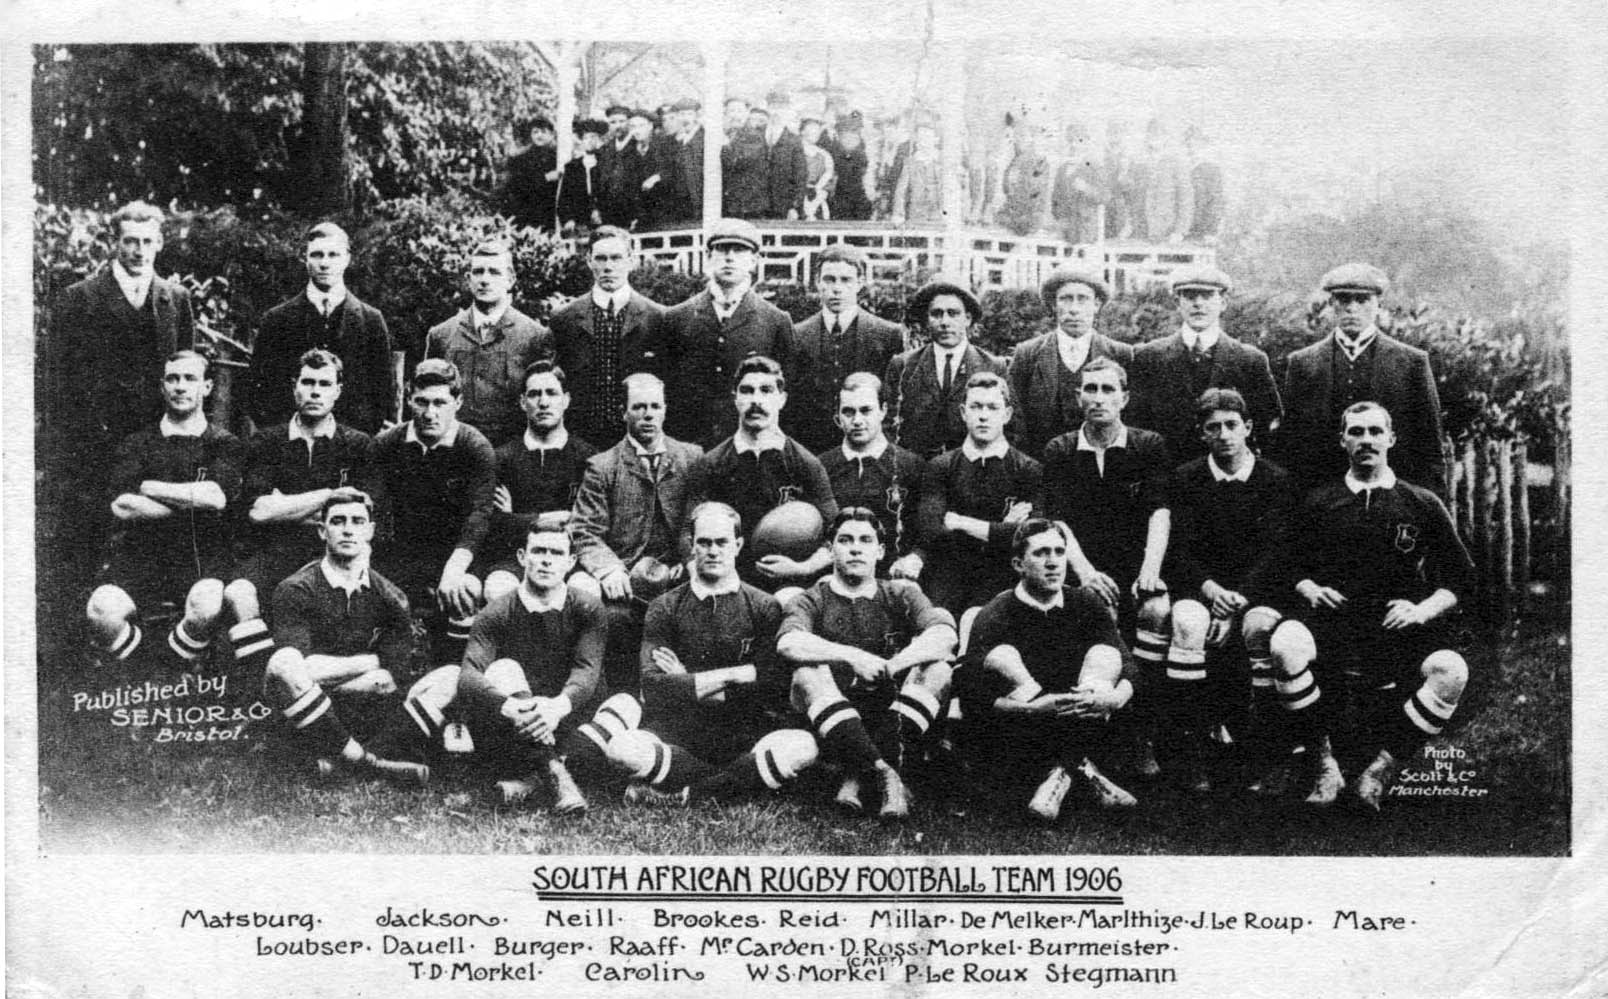 1906 Home Nations Championship